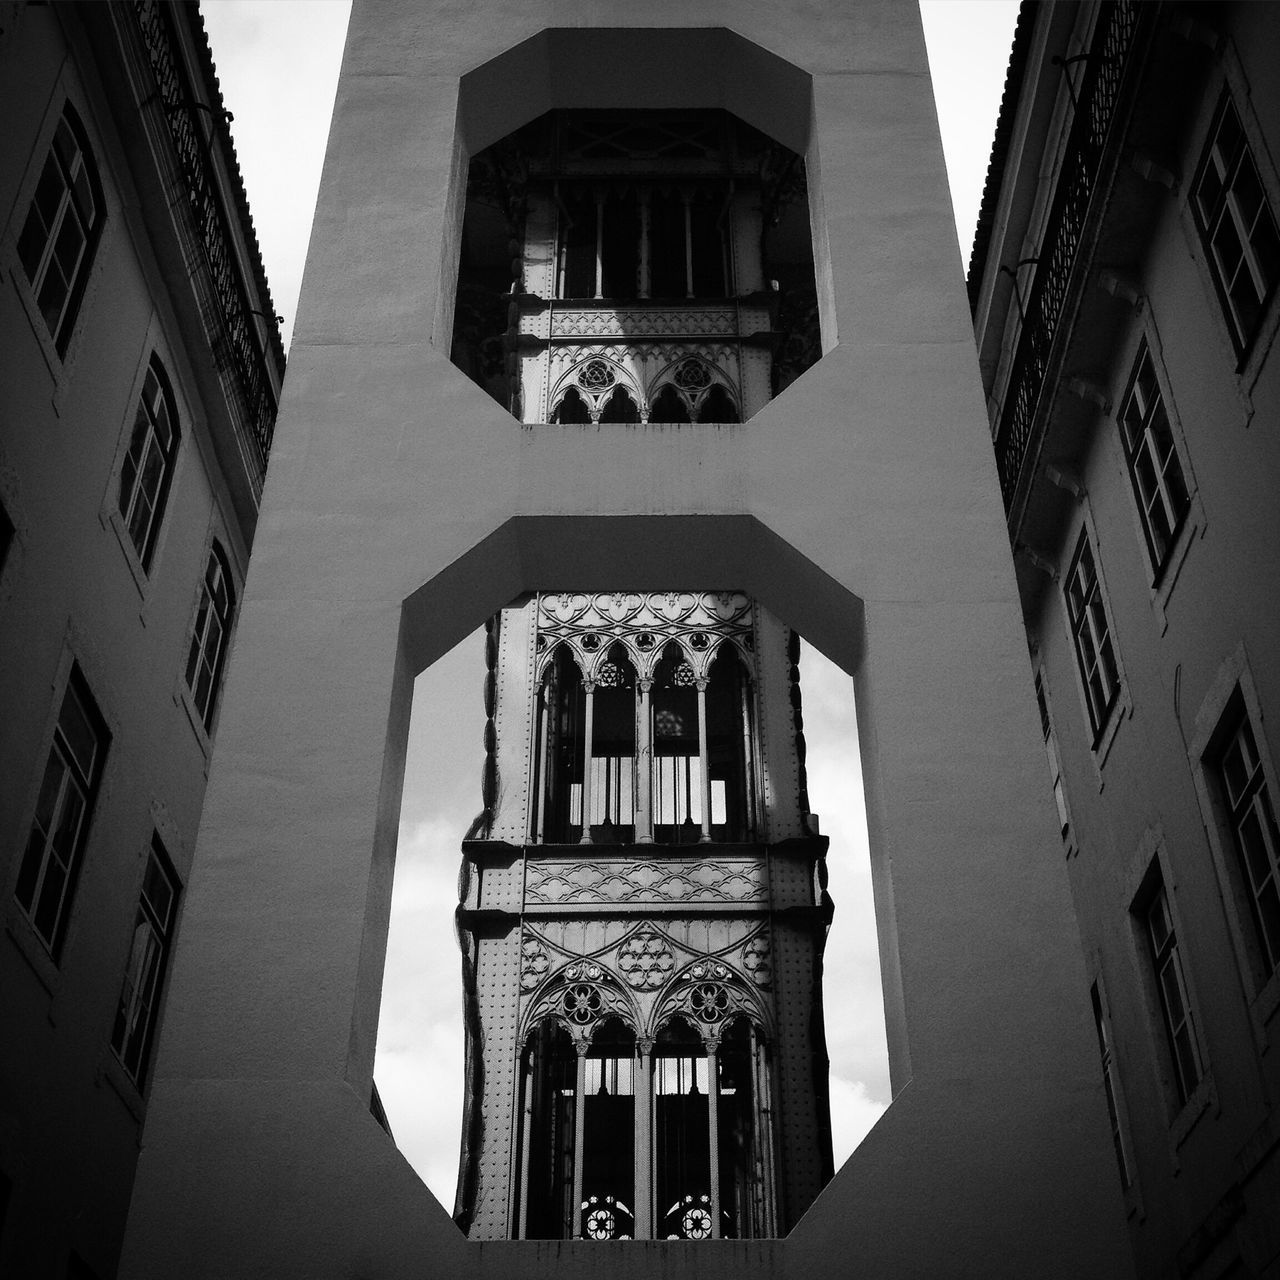 architecture, built structure, building exterior, window, low angle view, day, facade, no people, outdoors, place of worship, sky